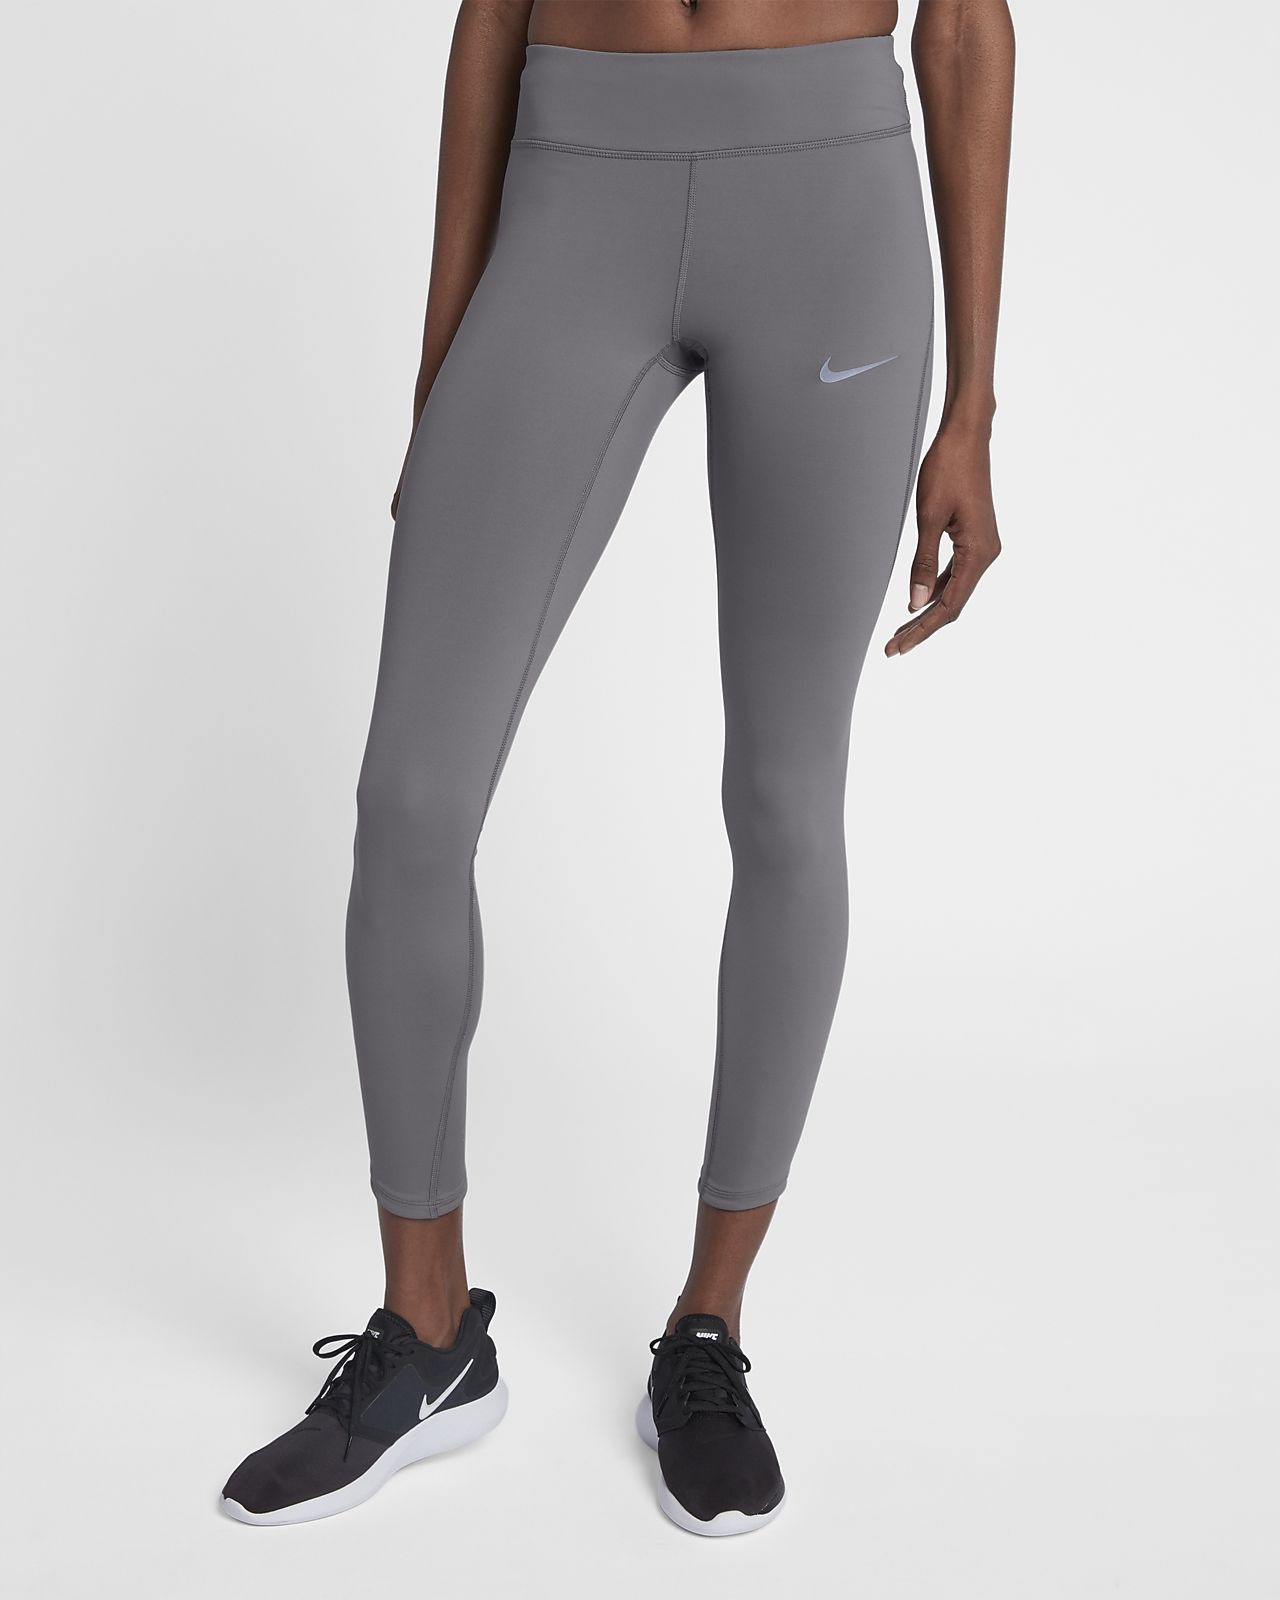 311227725262ae Nike Epic Lux Women's Mid-Rise Running Tights. Nike.com AU